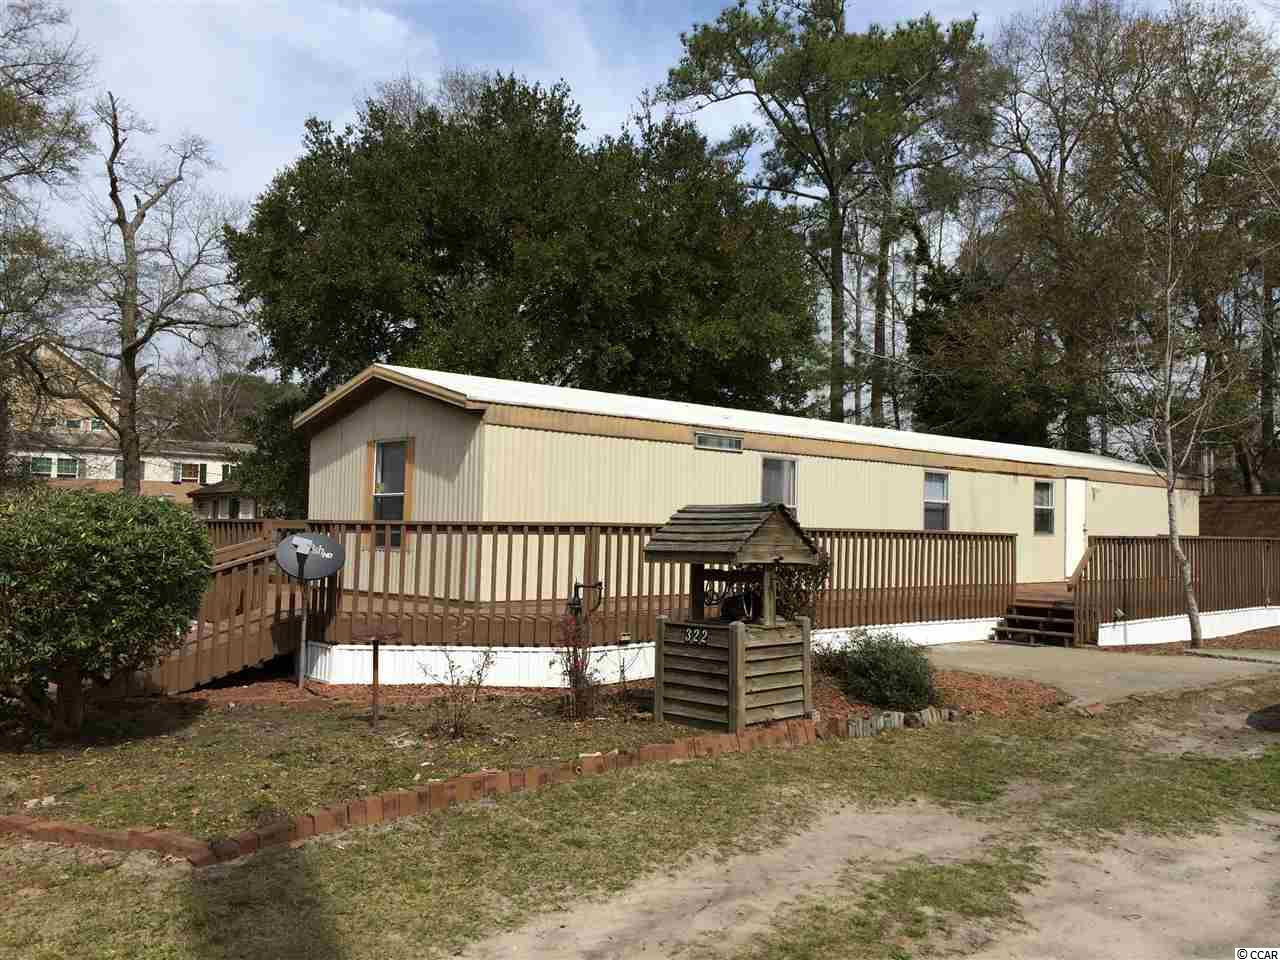 BEAUTIFUL LARGE LOT IN GARDEN CITY BEACH WITHIN A COUPLE OF BLOCKS OF THE BEACHES OF THE BLUE ATLANTIC!  MOBILE HOME NEEDS REPAIRS.  BUY TODAY AND BUILD AT YOUR LEISURE.  VISTA DRIVE IS A STREET WITH MANY NEWER, BEAUTIFUL HOMES.